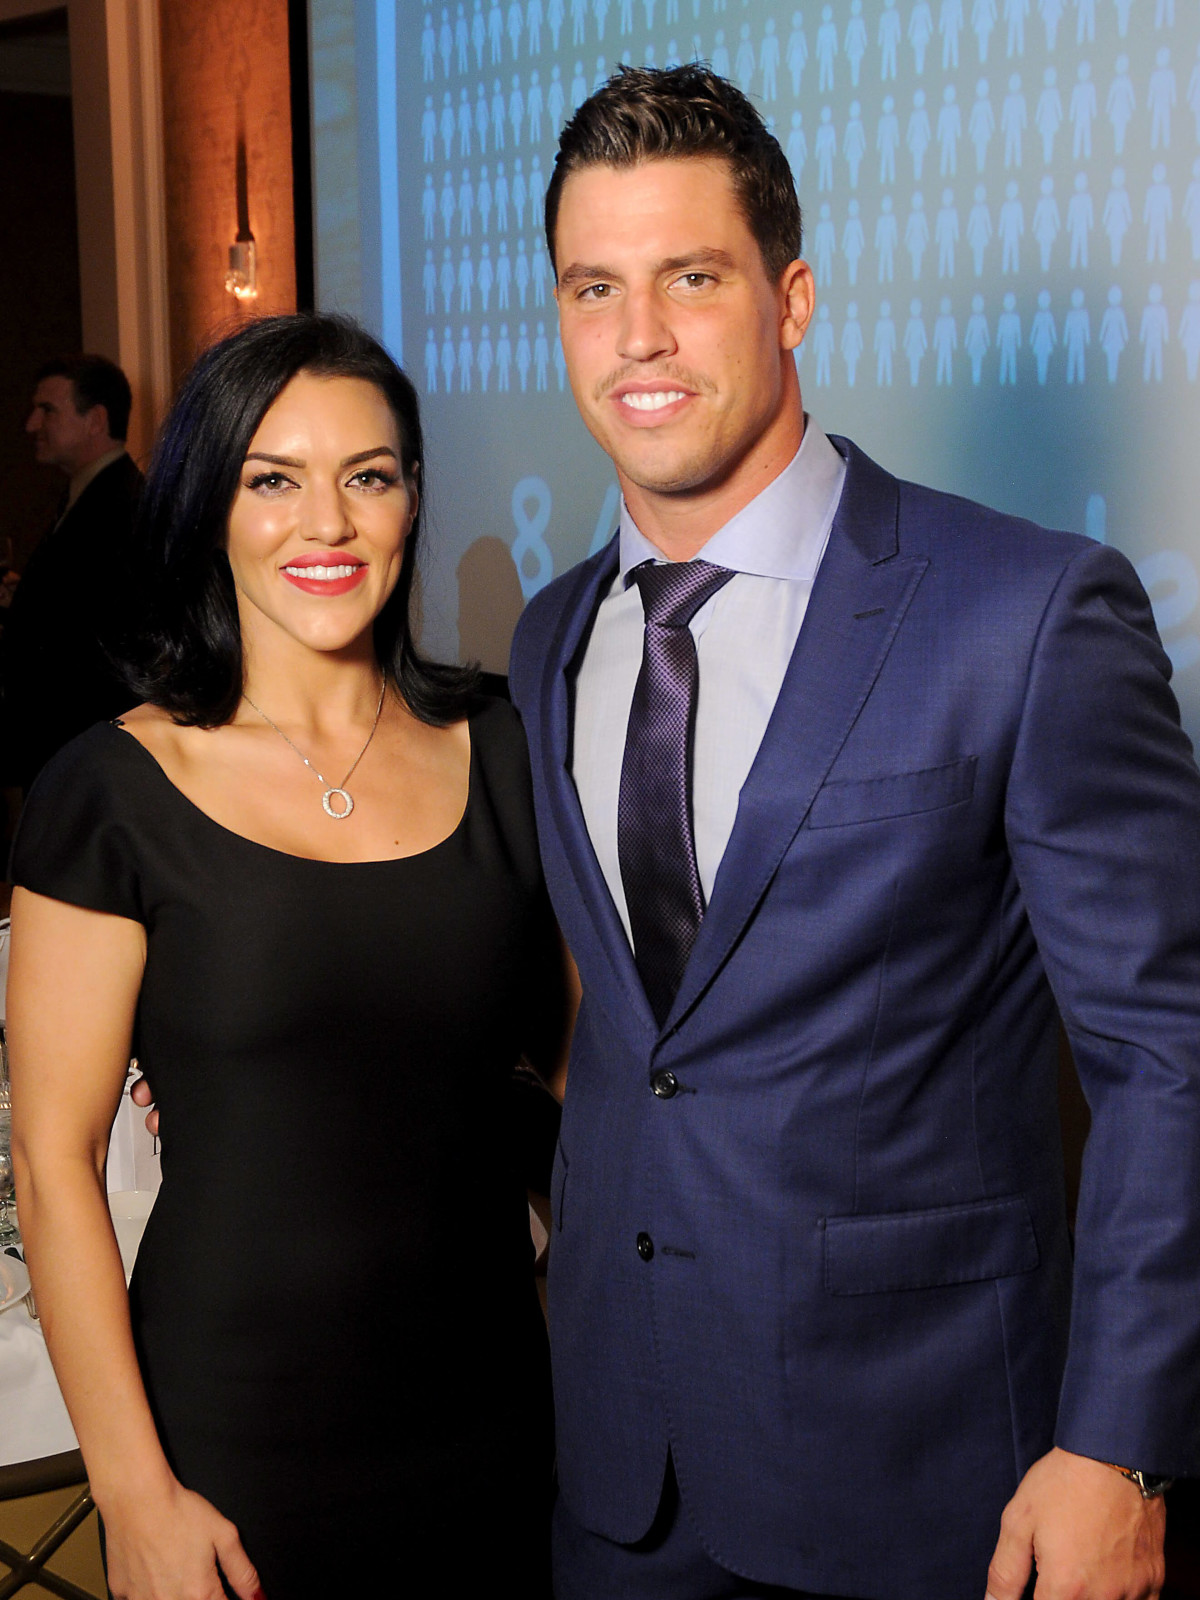 Megan and Brian Cushing/TEACH DINNER